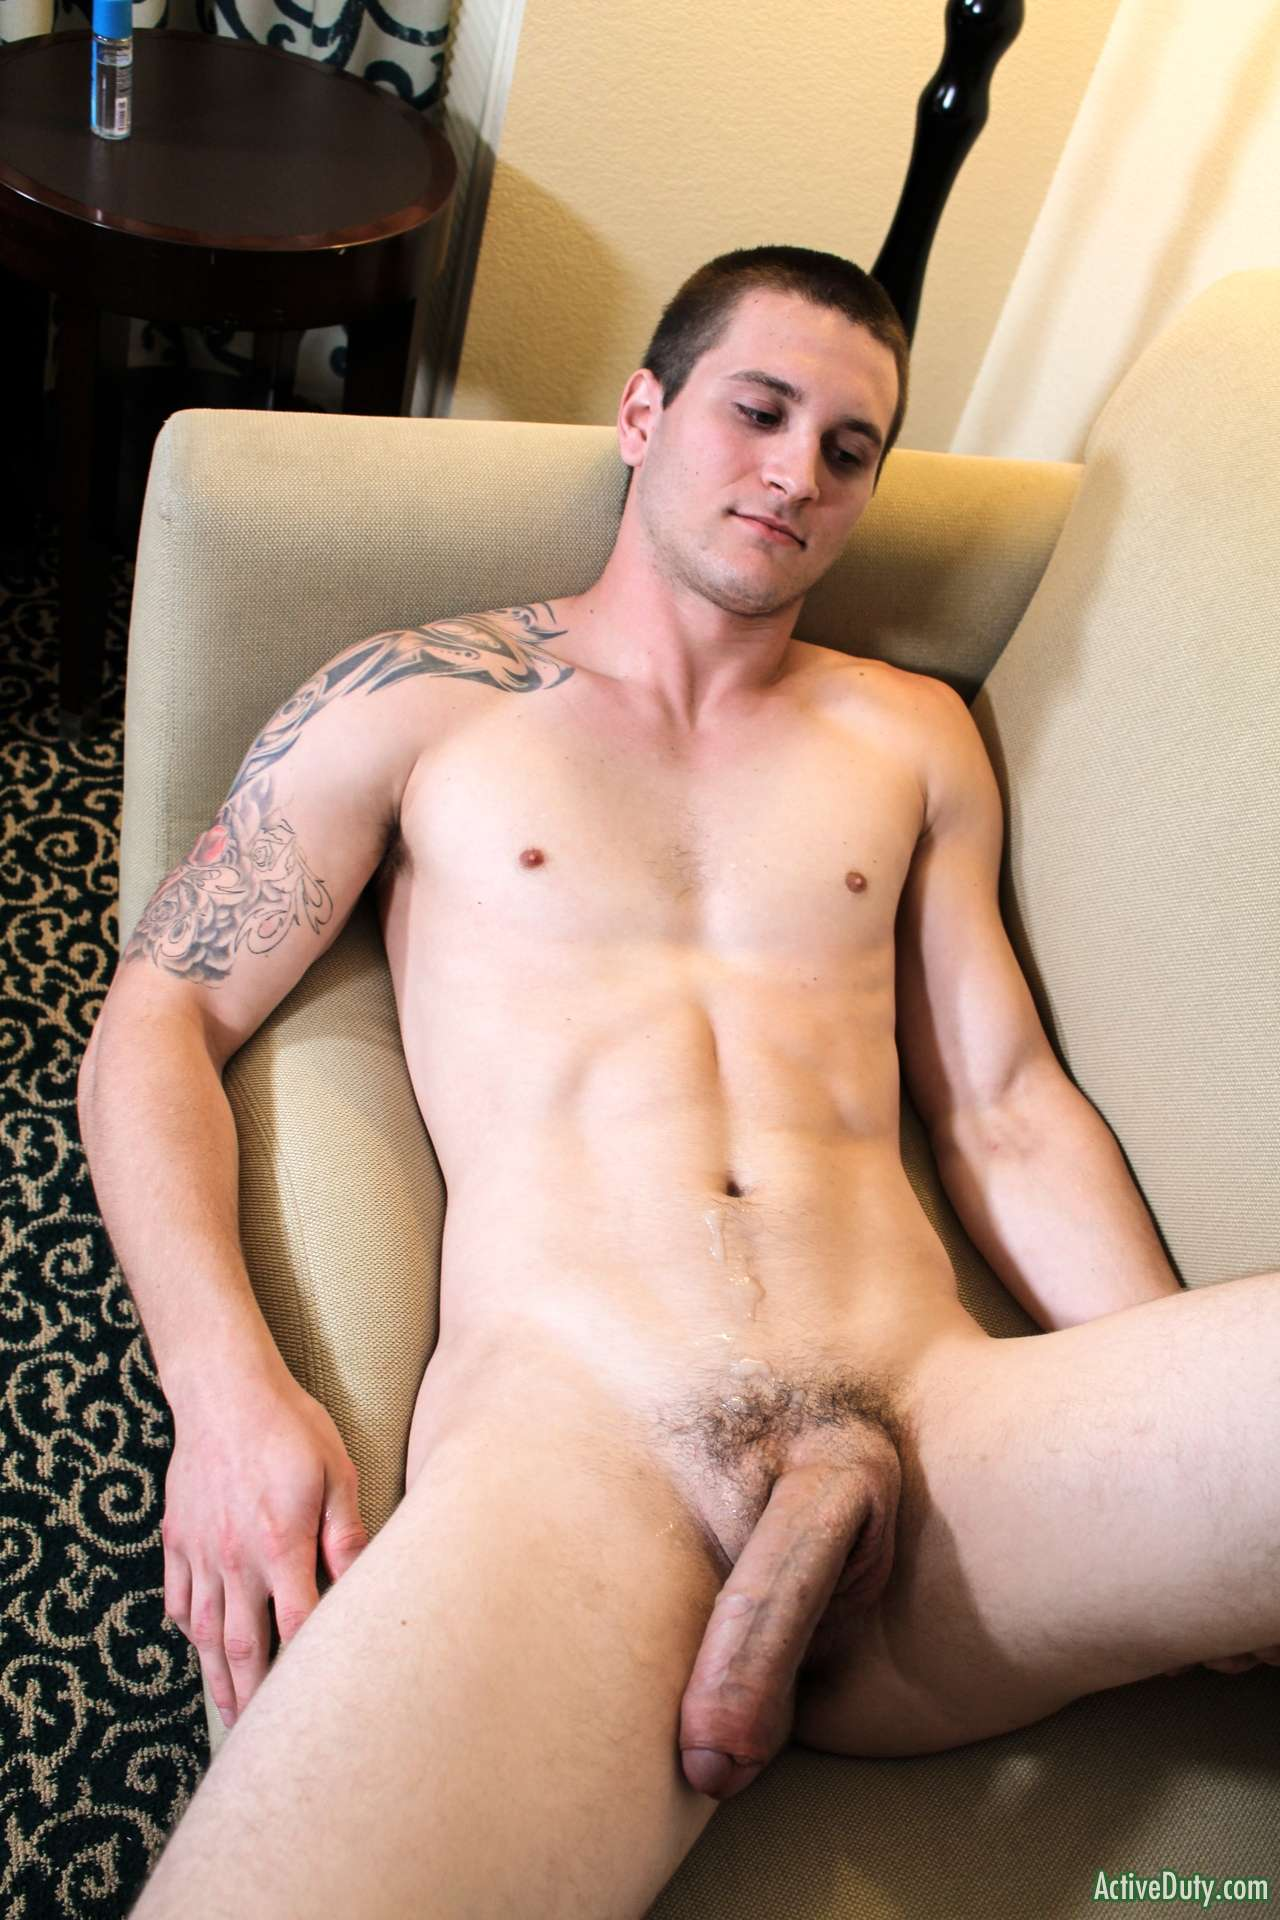 hung uncut cock semi hard